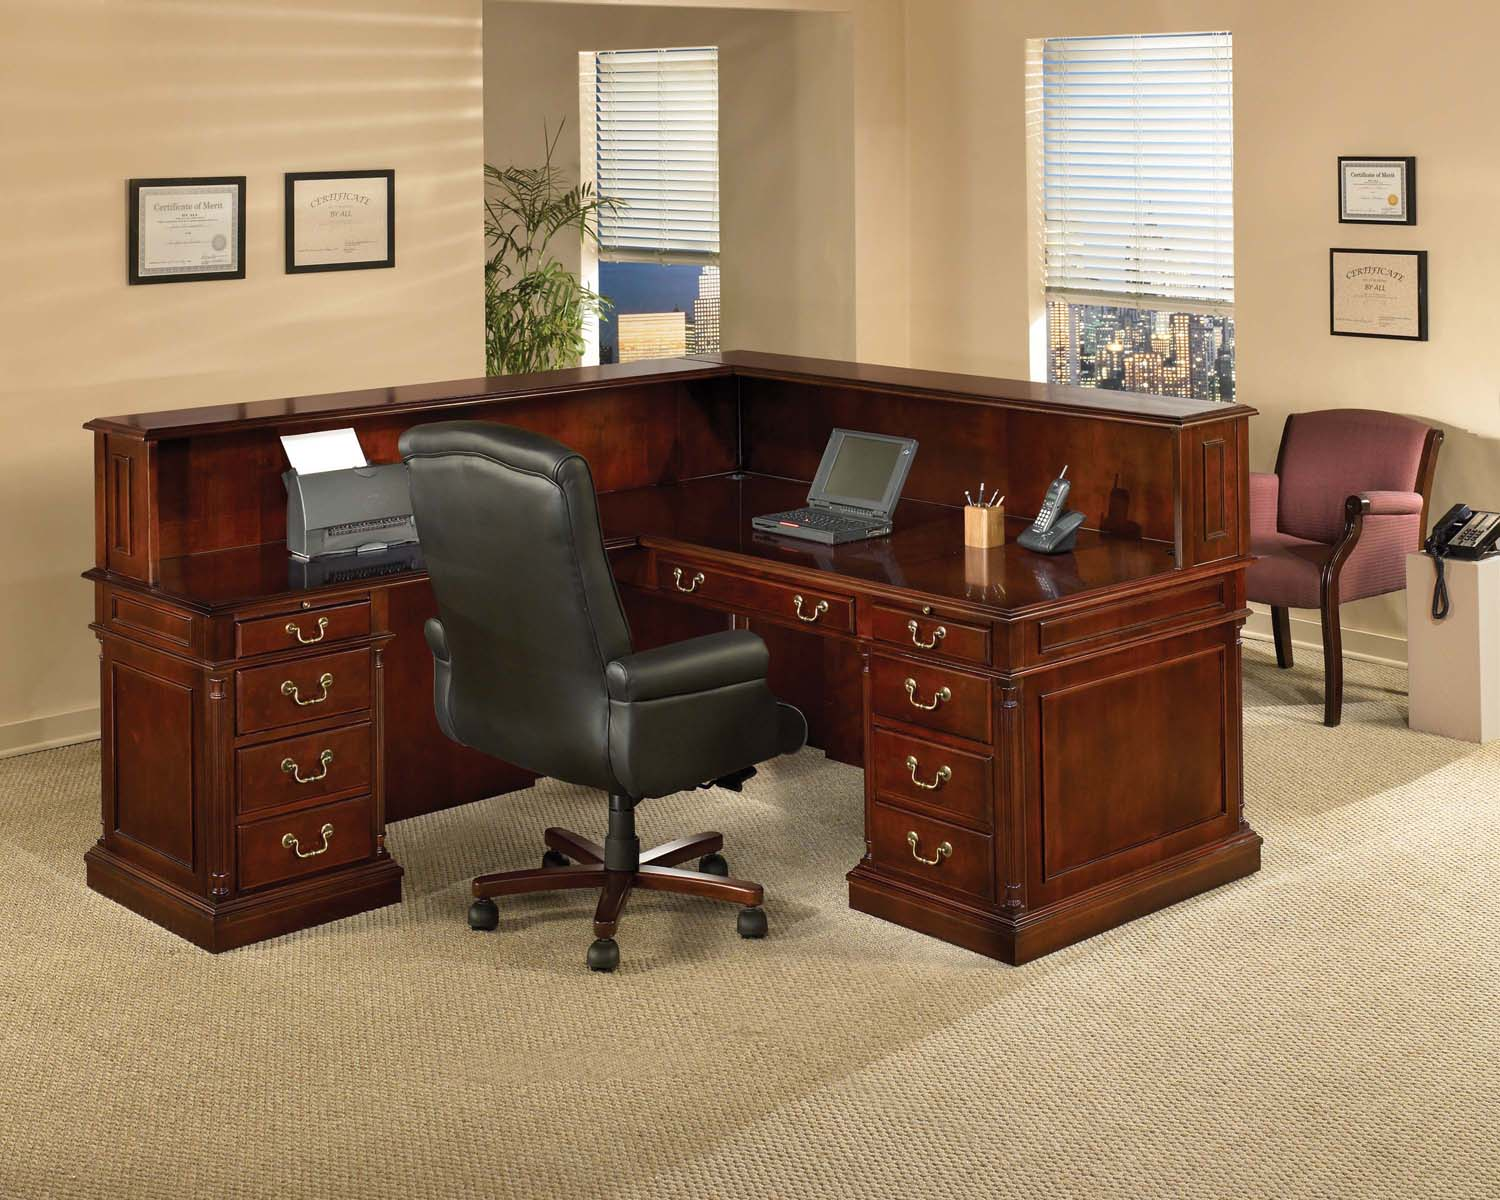 incredible office furnitureveneer modern shaped office. Hampton Traditions Office Desk Incredible Furnitureveneer Modern Shaped